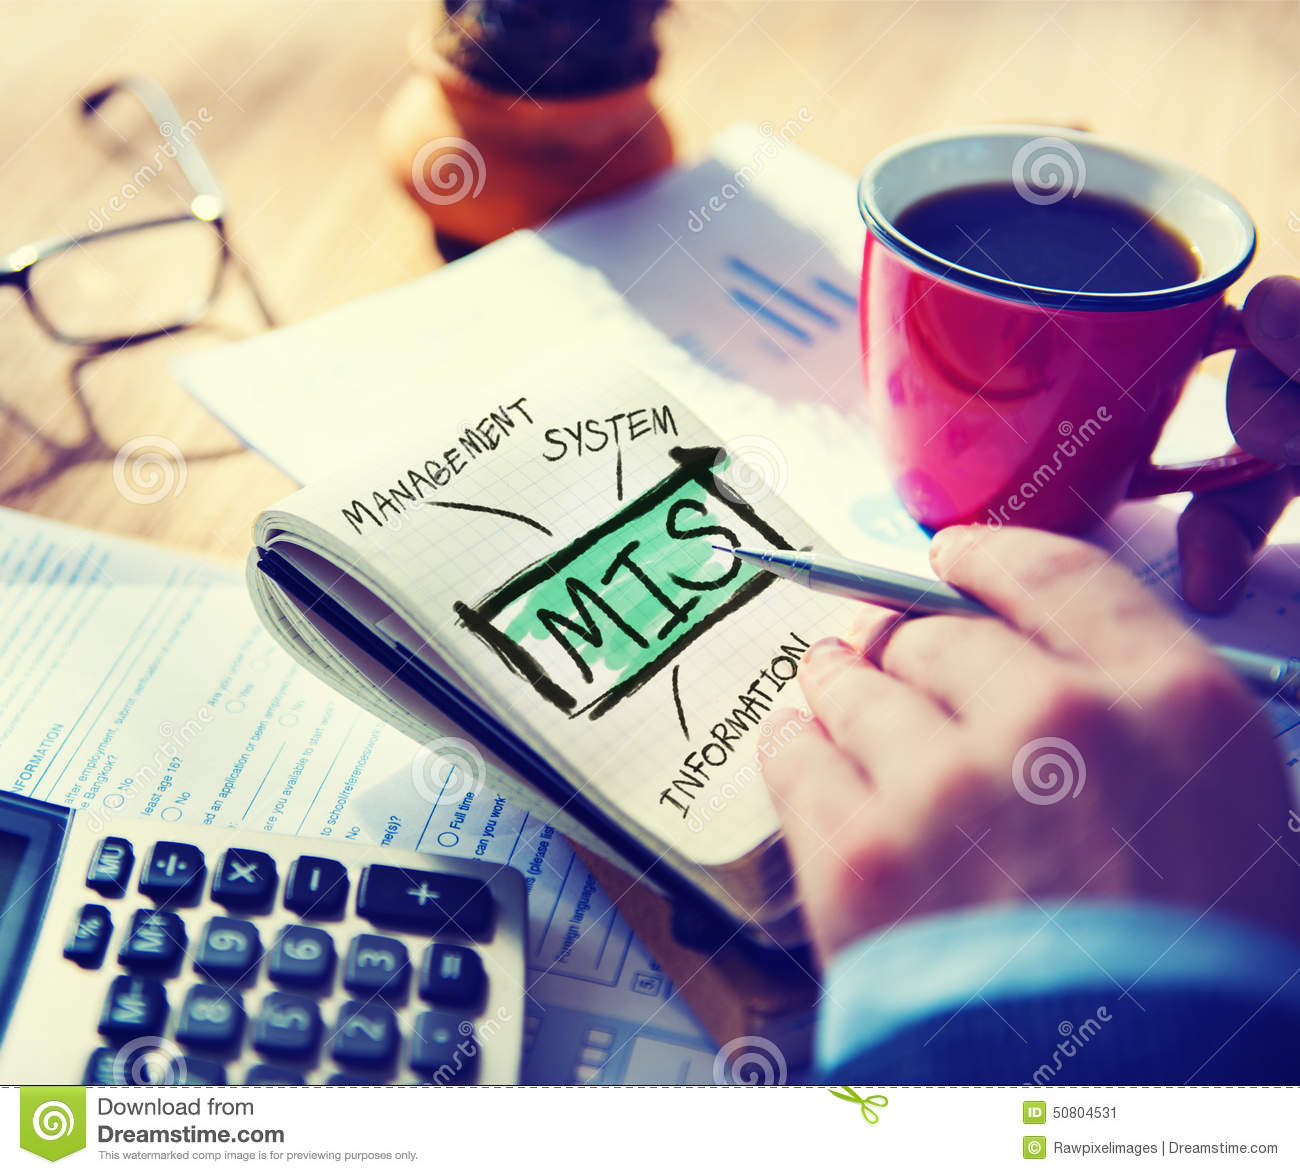 mis information system Mis is about more than managing technology it's about finding business  solutions bethel's online bs in management information systems program  prepares.